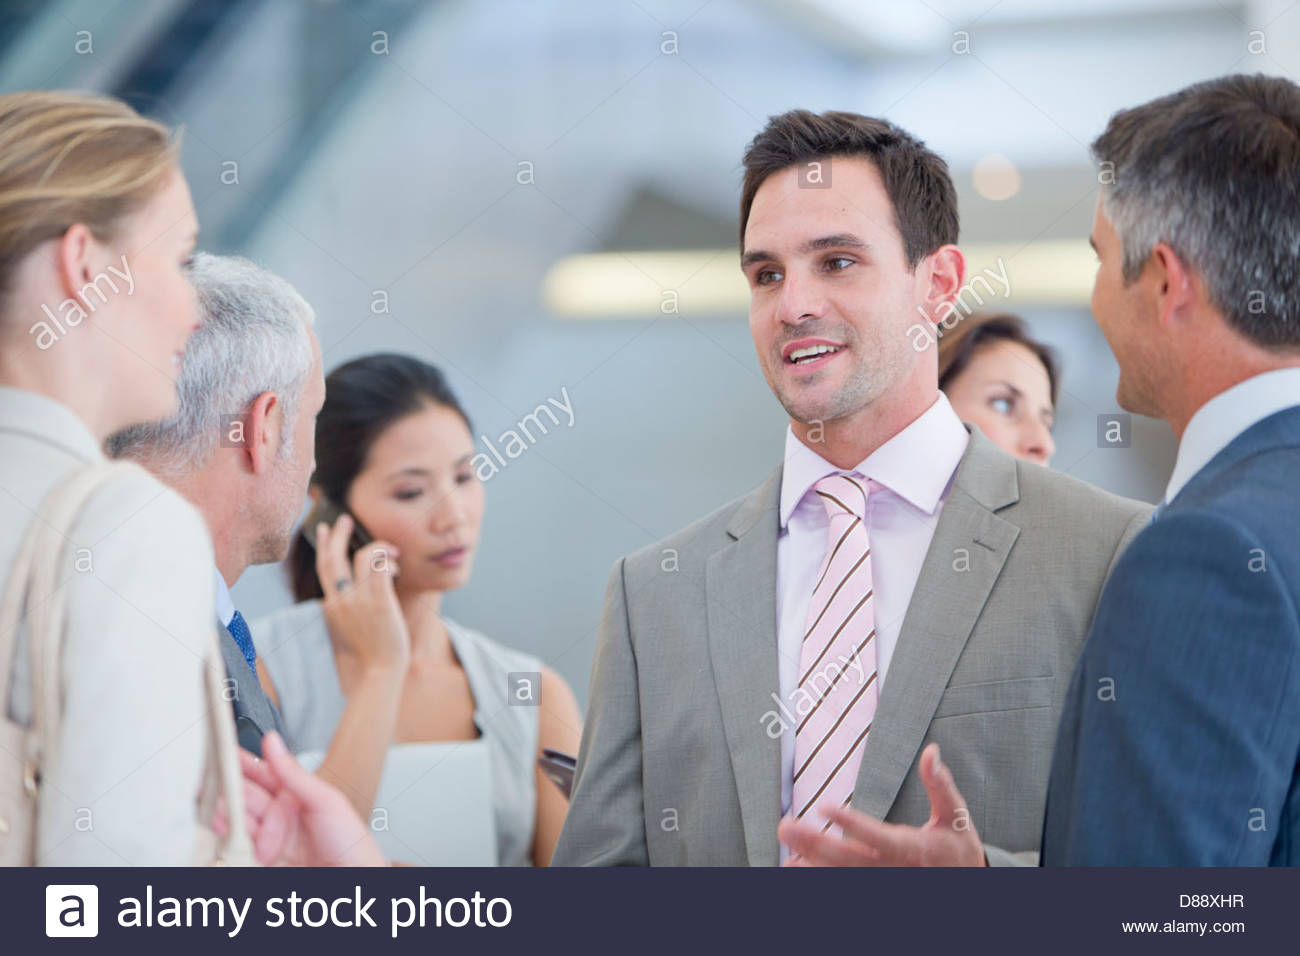 Business people talking - Stock Image